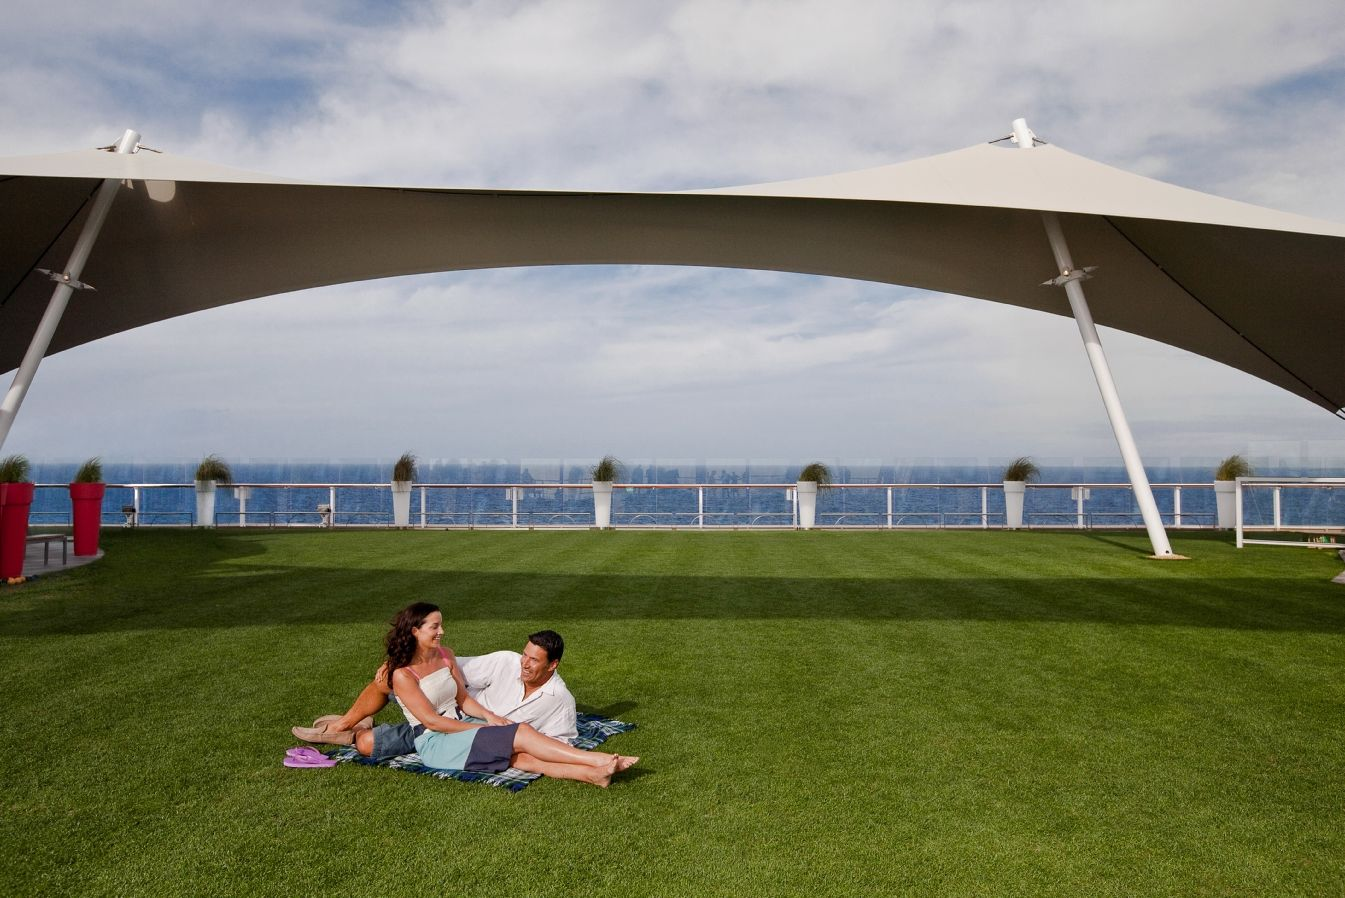 #SailwithCelebrity Celebrity Solstice cruise boat has a yard! With real grass! I CAN'T WAIT!